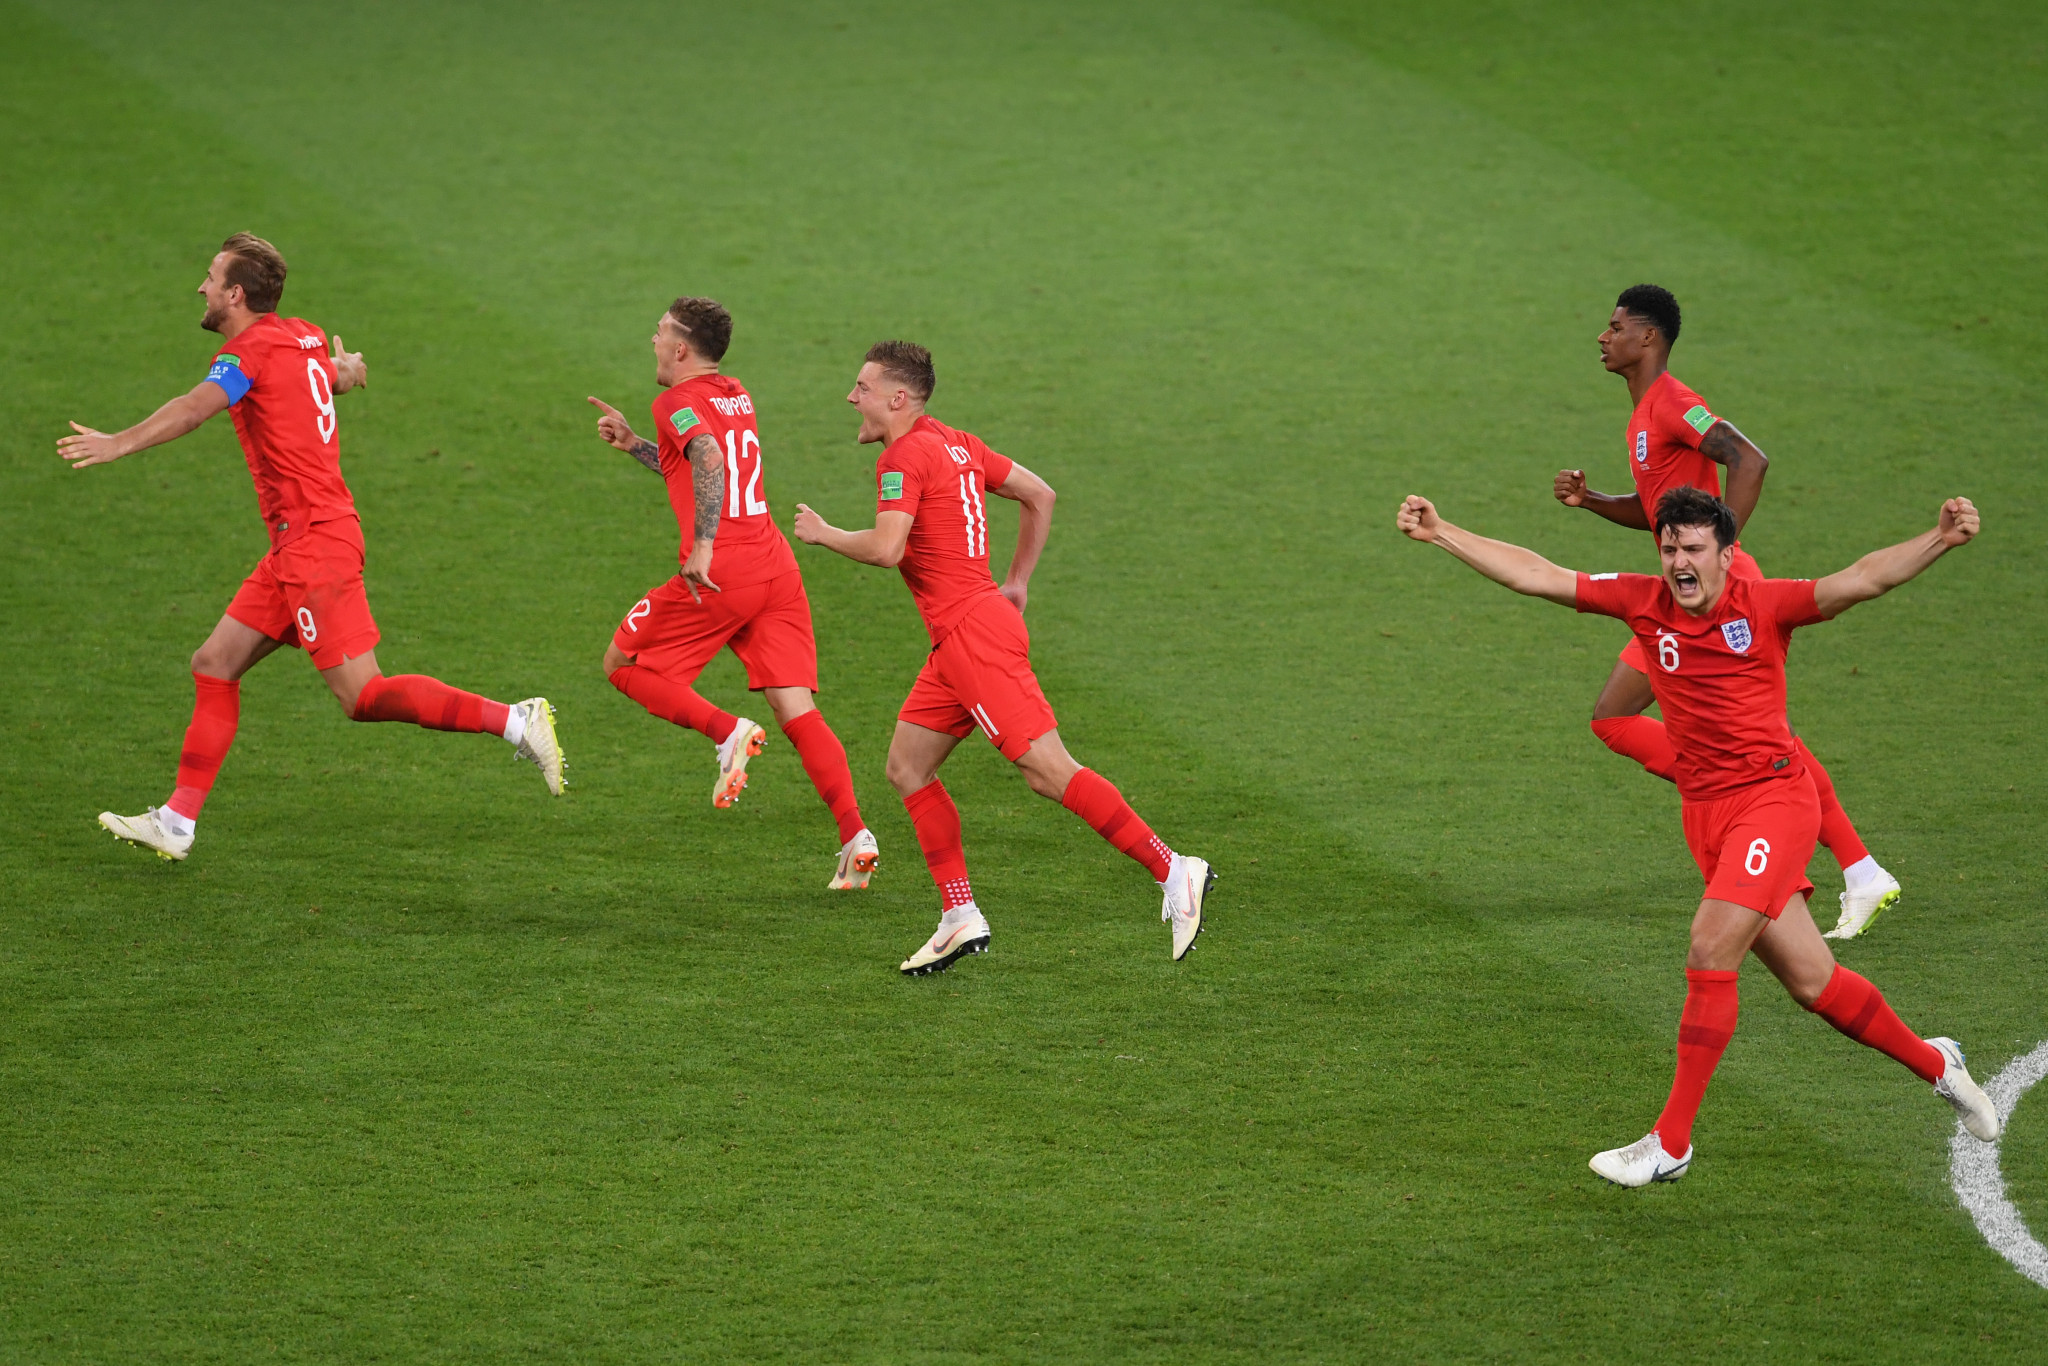 England win first World Cup penalty shoot-out to set up FIFA World Cup quarter-final meeting with Sweden